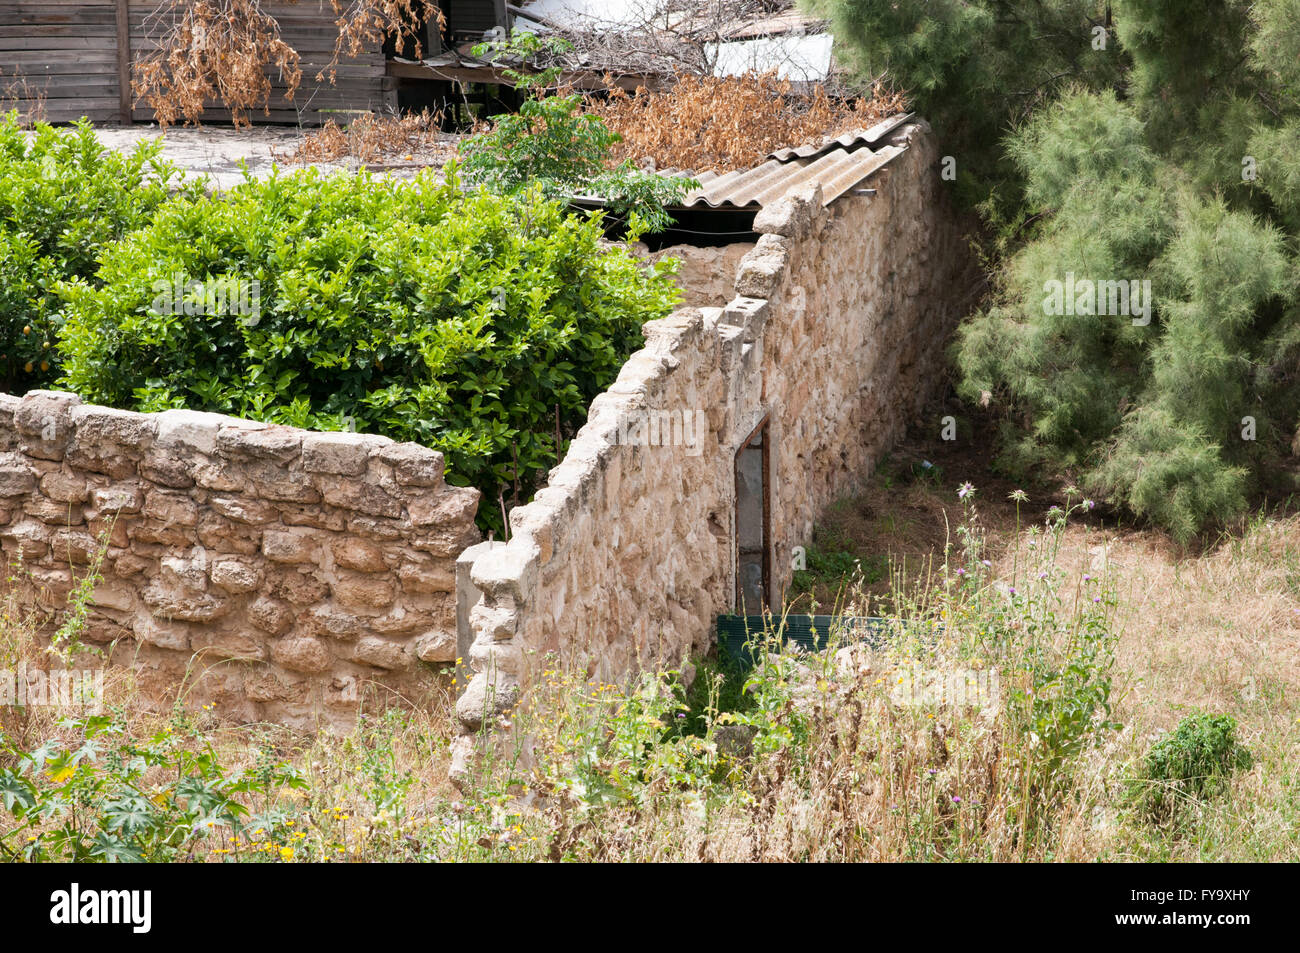 Deserted and neglected house built from the local Kurkar stone (a calcareous sandstone or fossilized sea sand dunes - Stock Image